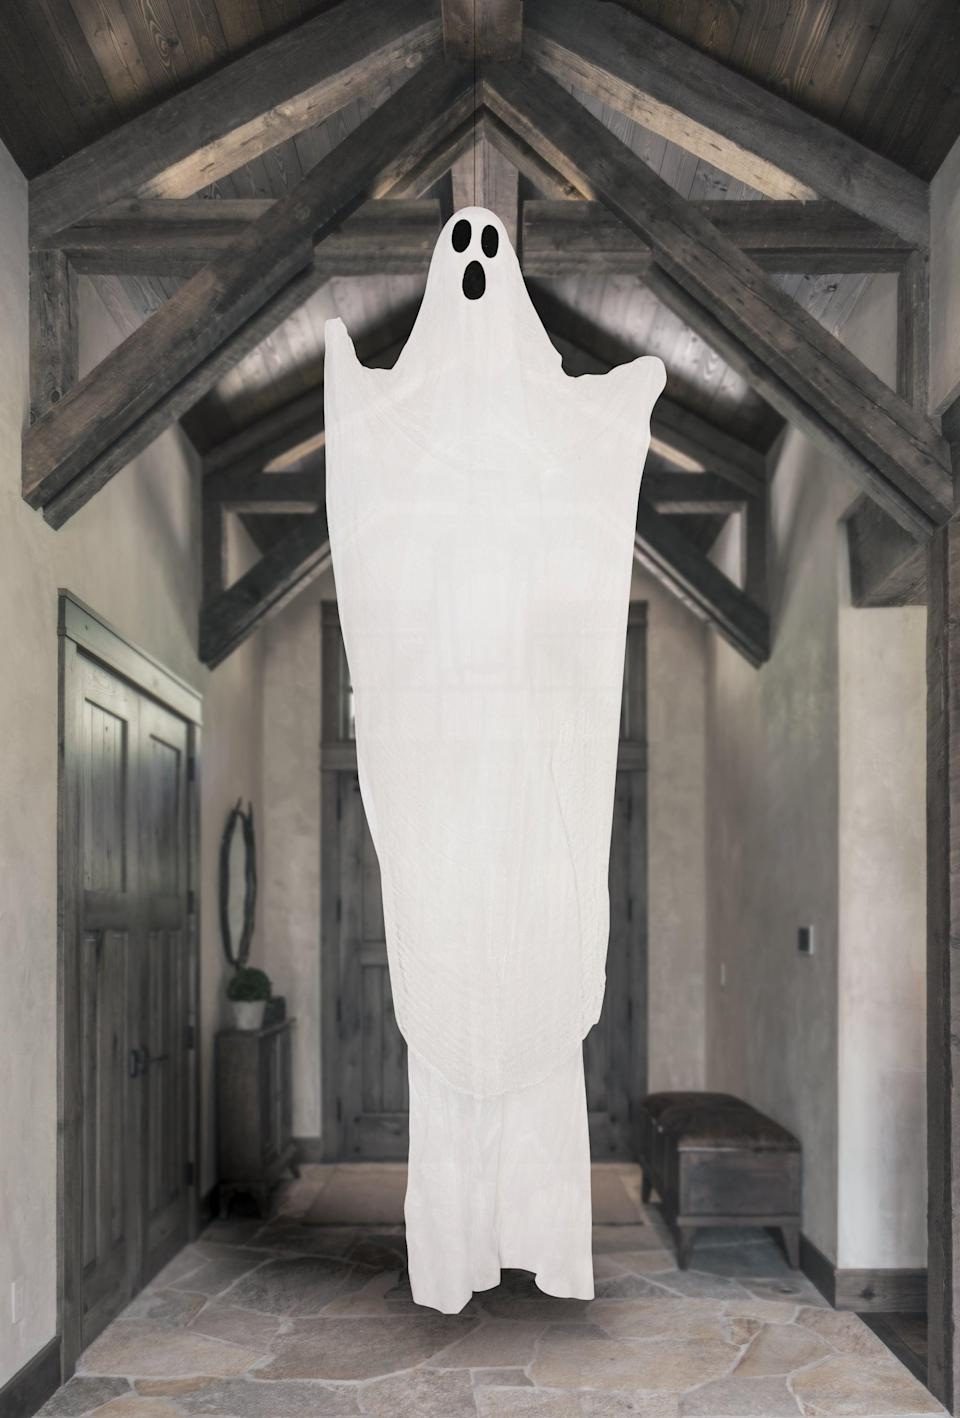 <p>Give a spooky welcome to trick-or-treaters with this <span>Way to Celebrate Halloween Hanging Ghost Decoration</span> ($10). It's eerie, creepy, and such a great find for a haunted house.</p>